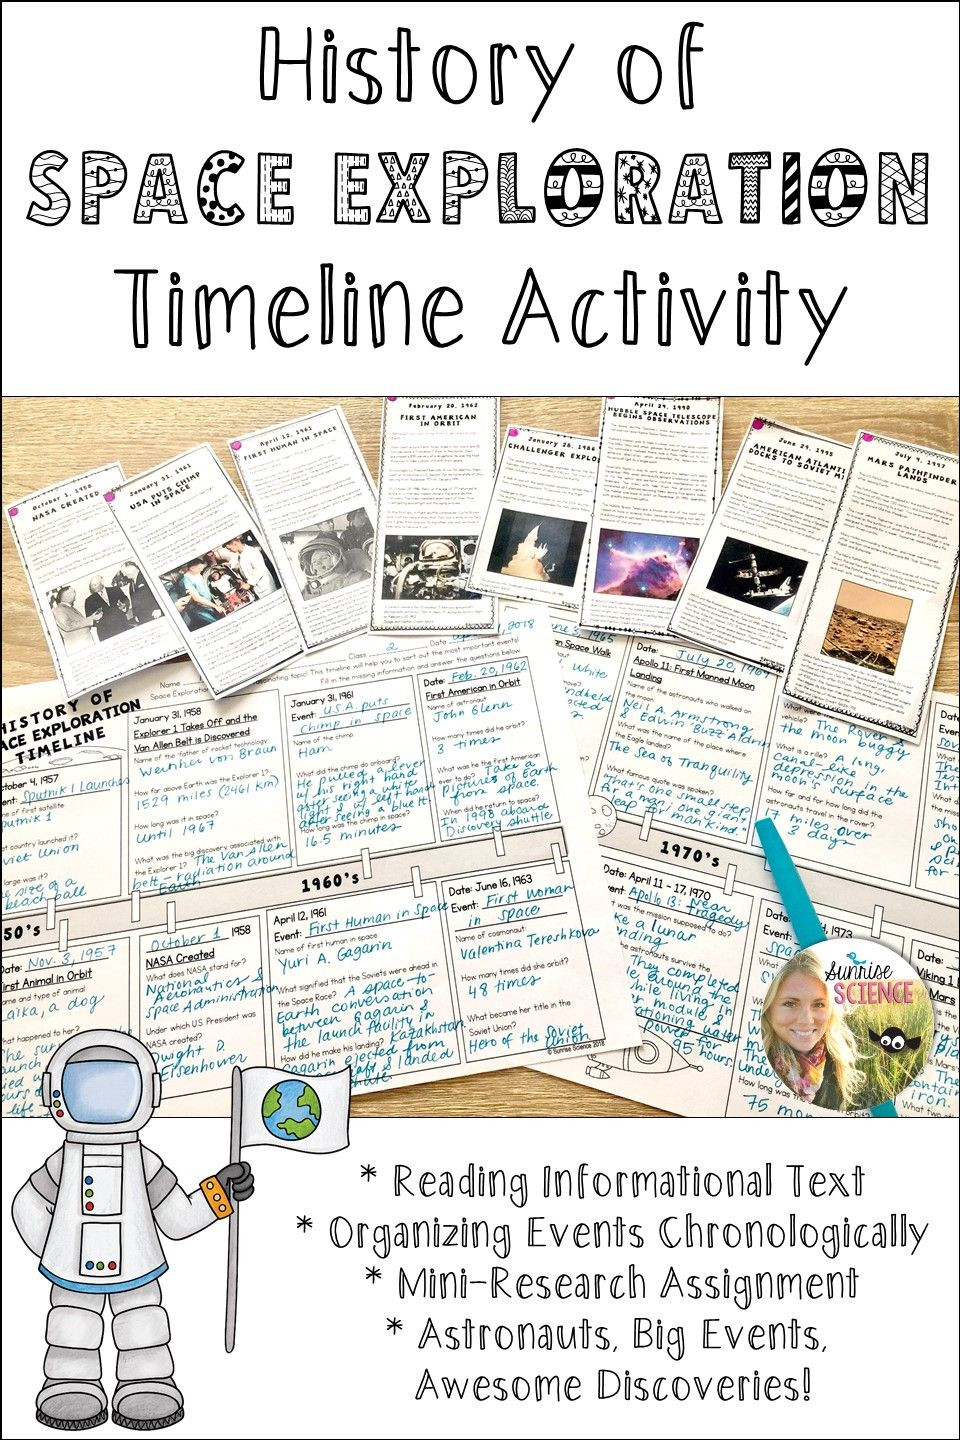 Timeline Worksheets for Middle School Space Exploration History Timeline Activity